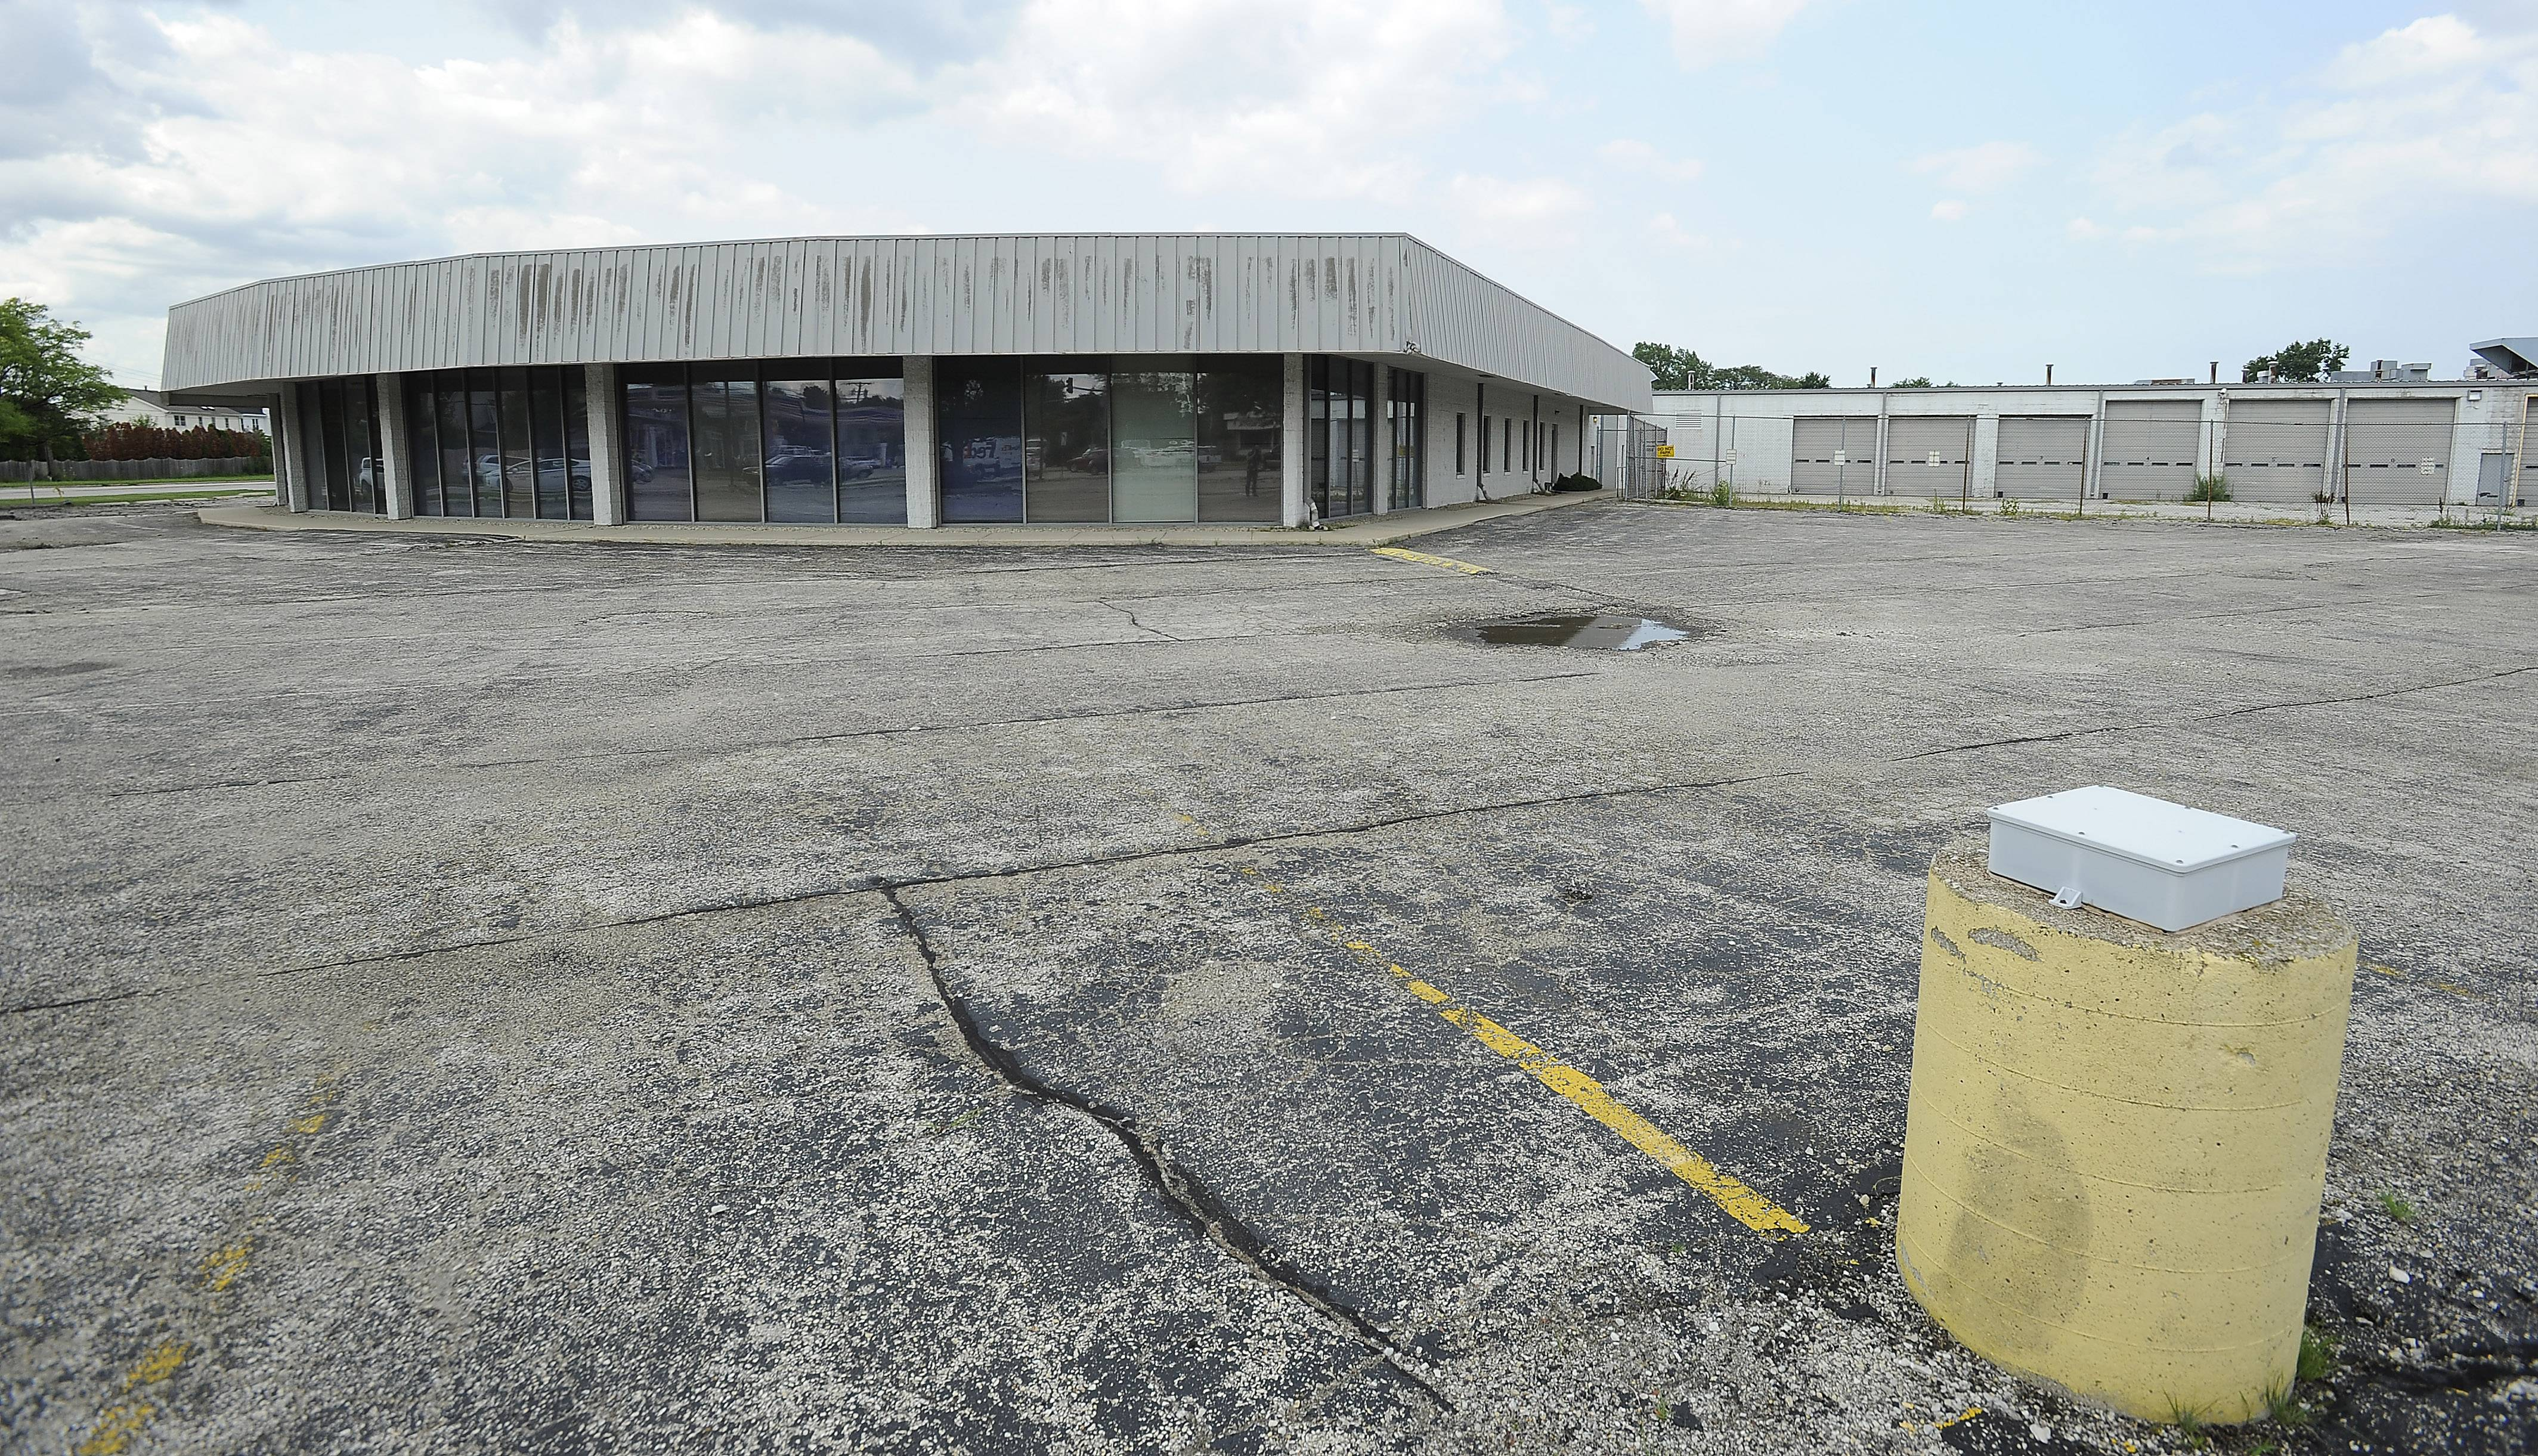 The property at the intersection of Mount Prospect and Golf roads could become the new home of a Mariano's grocery store in Des Plaines.